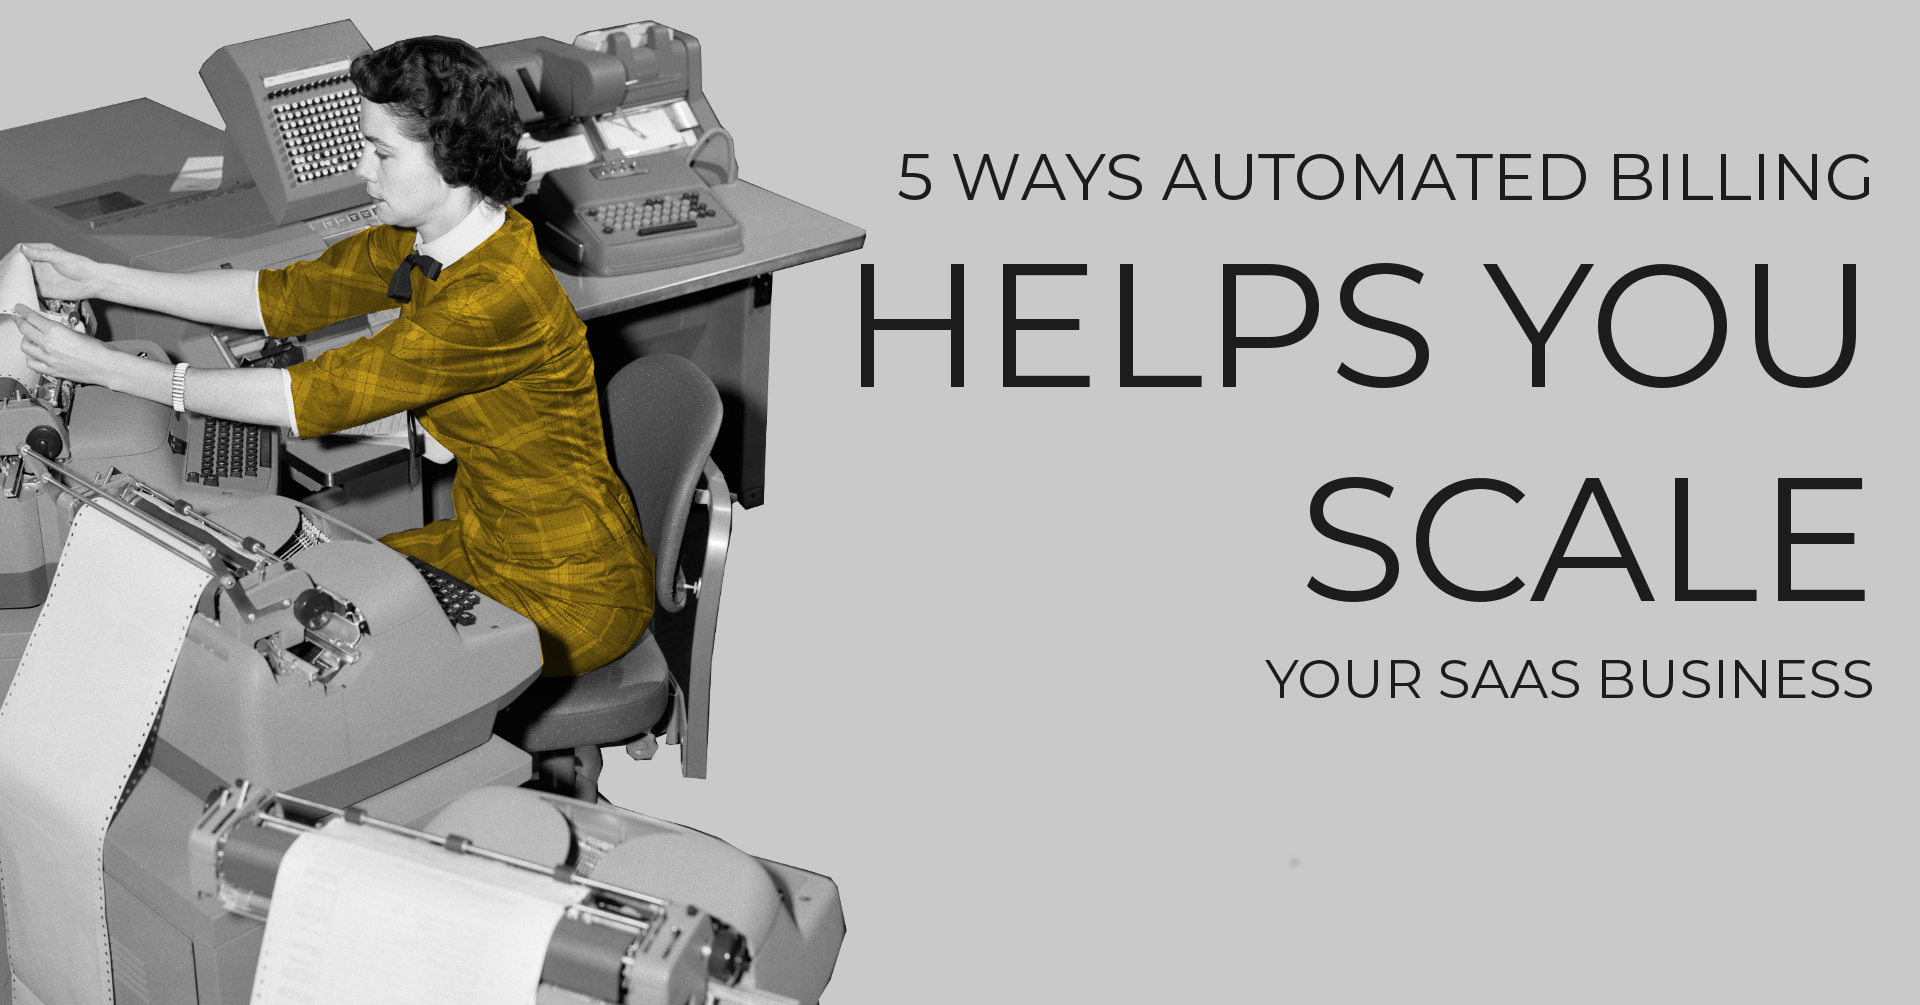 5 ways automated billing helps you scale your SaaS business